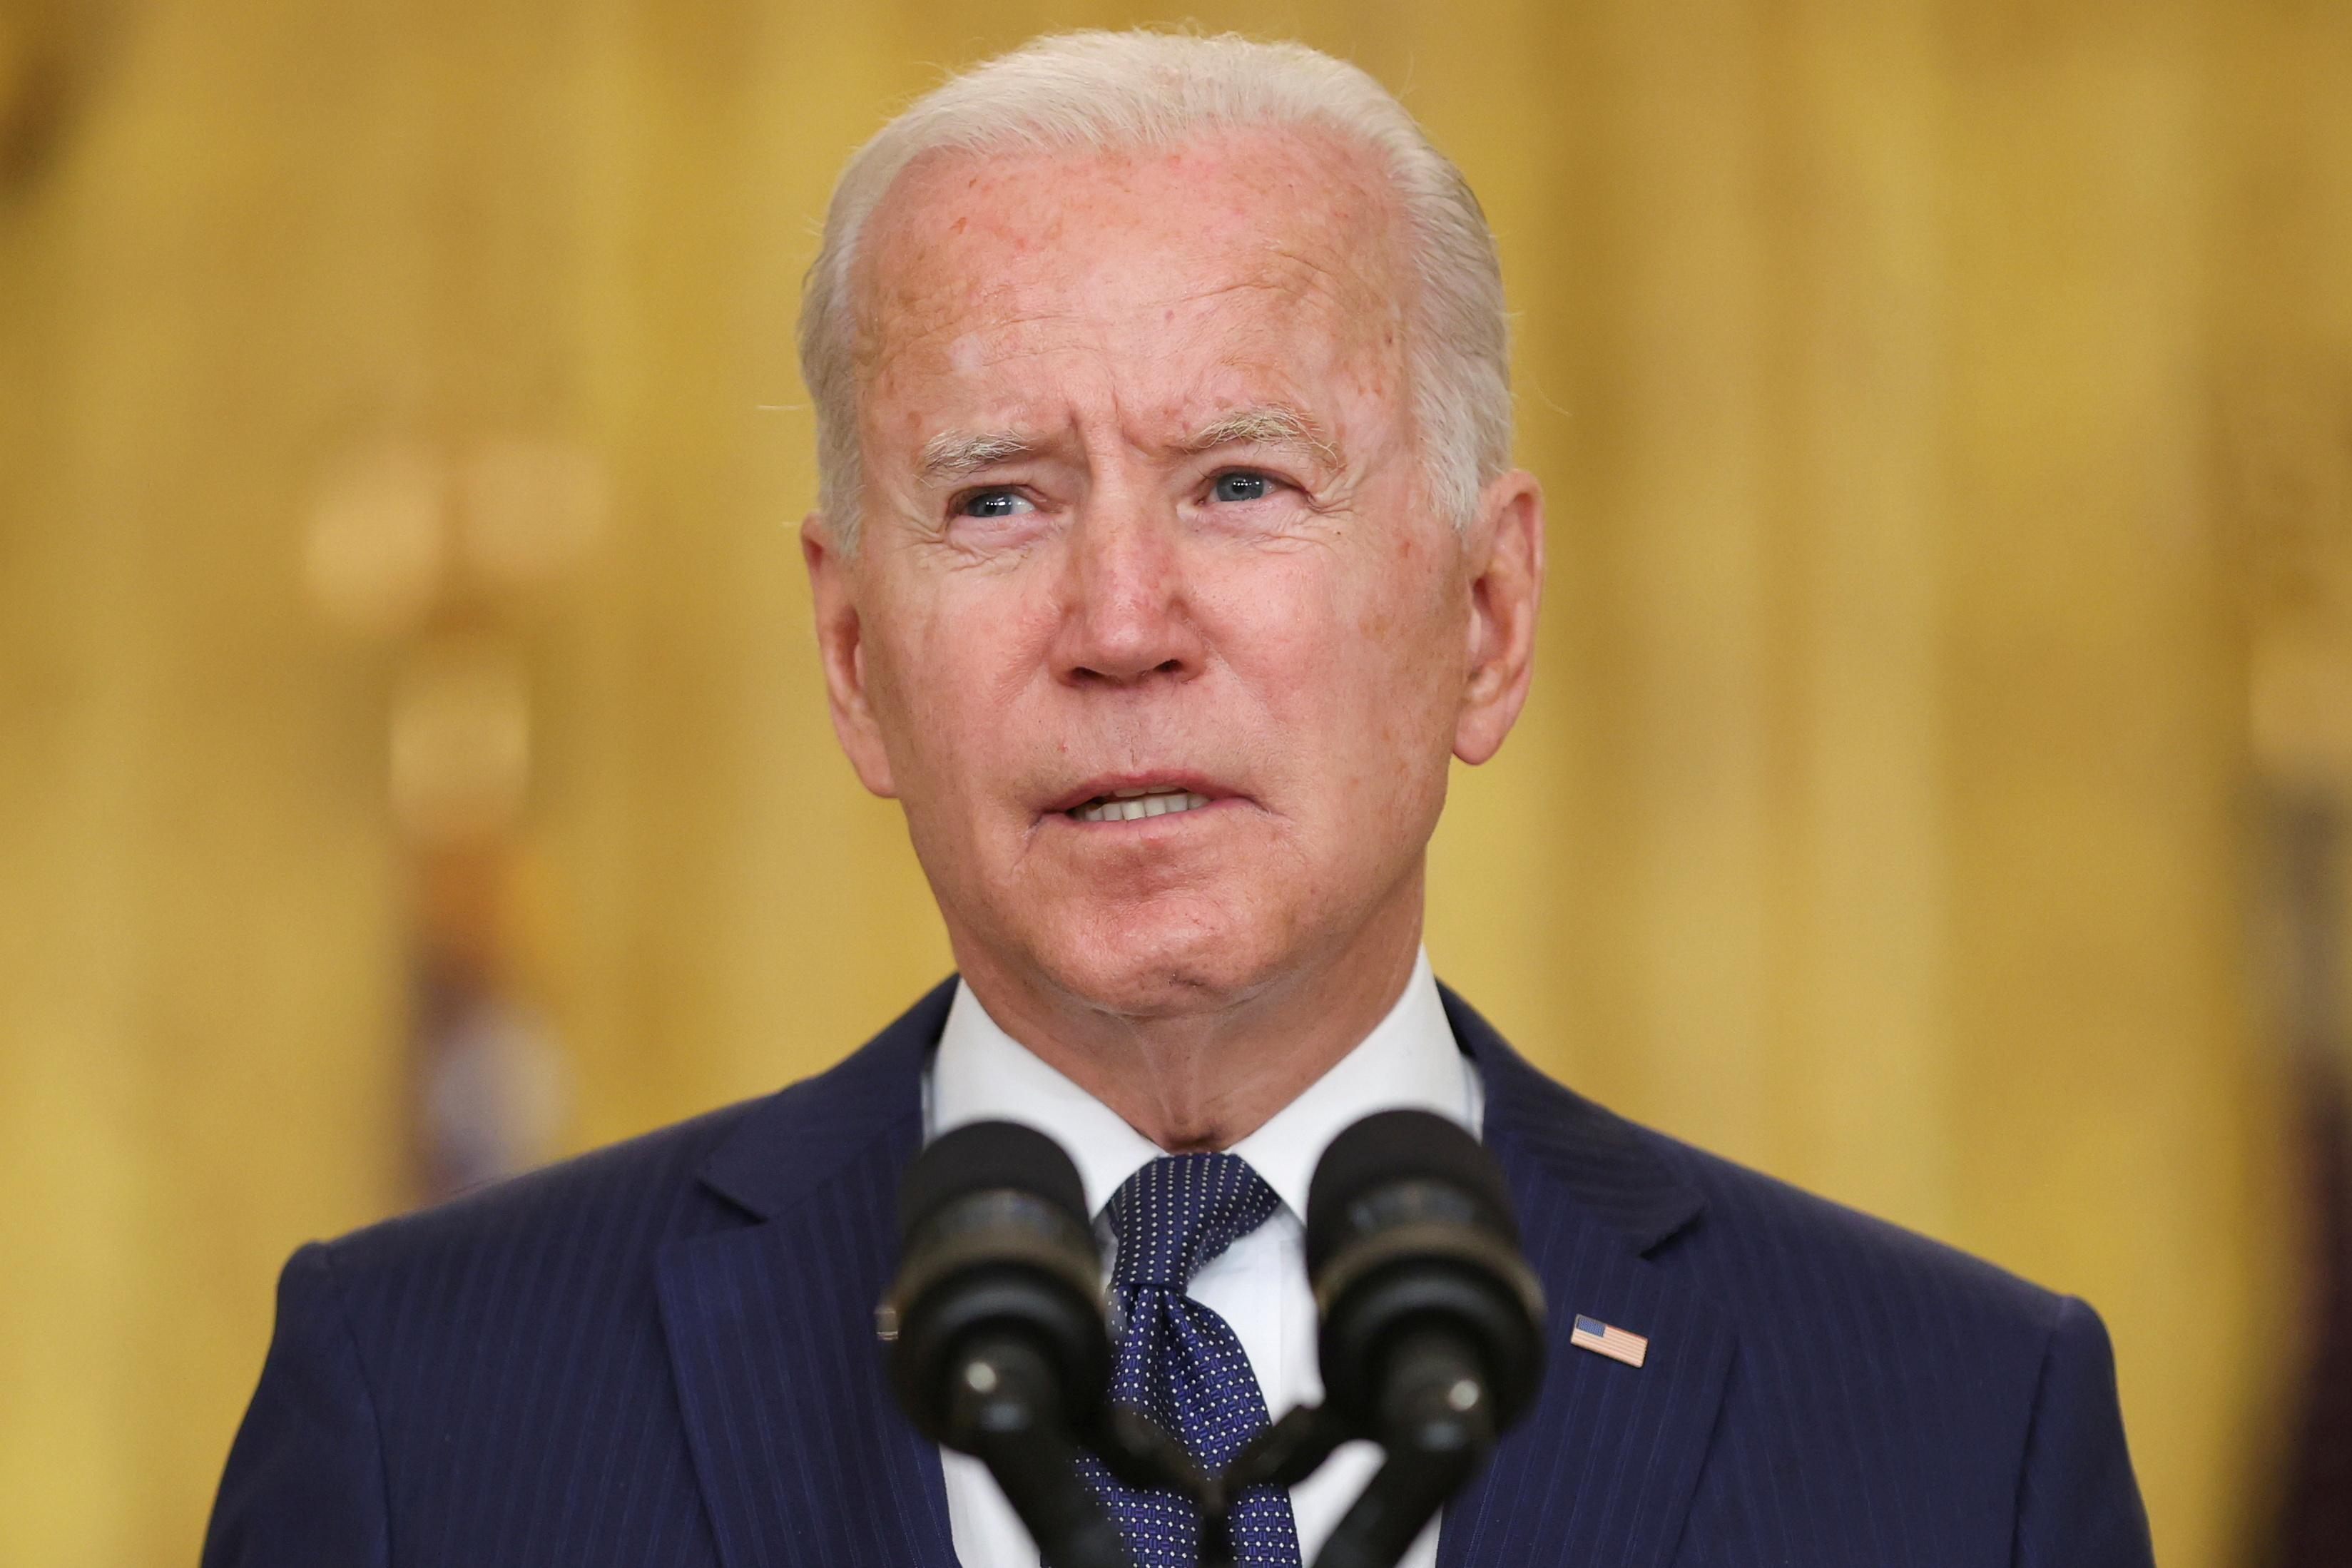 U.S. President Joe Biden delivers remarks about Afghanistan, from the East Room of the White House in Washington, U.S. August 26, 2021. REUTERS/Jonathan Ernst/File Photo